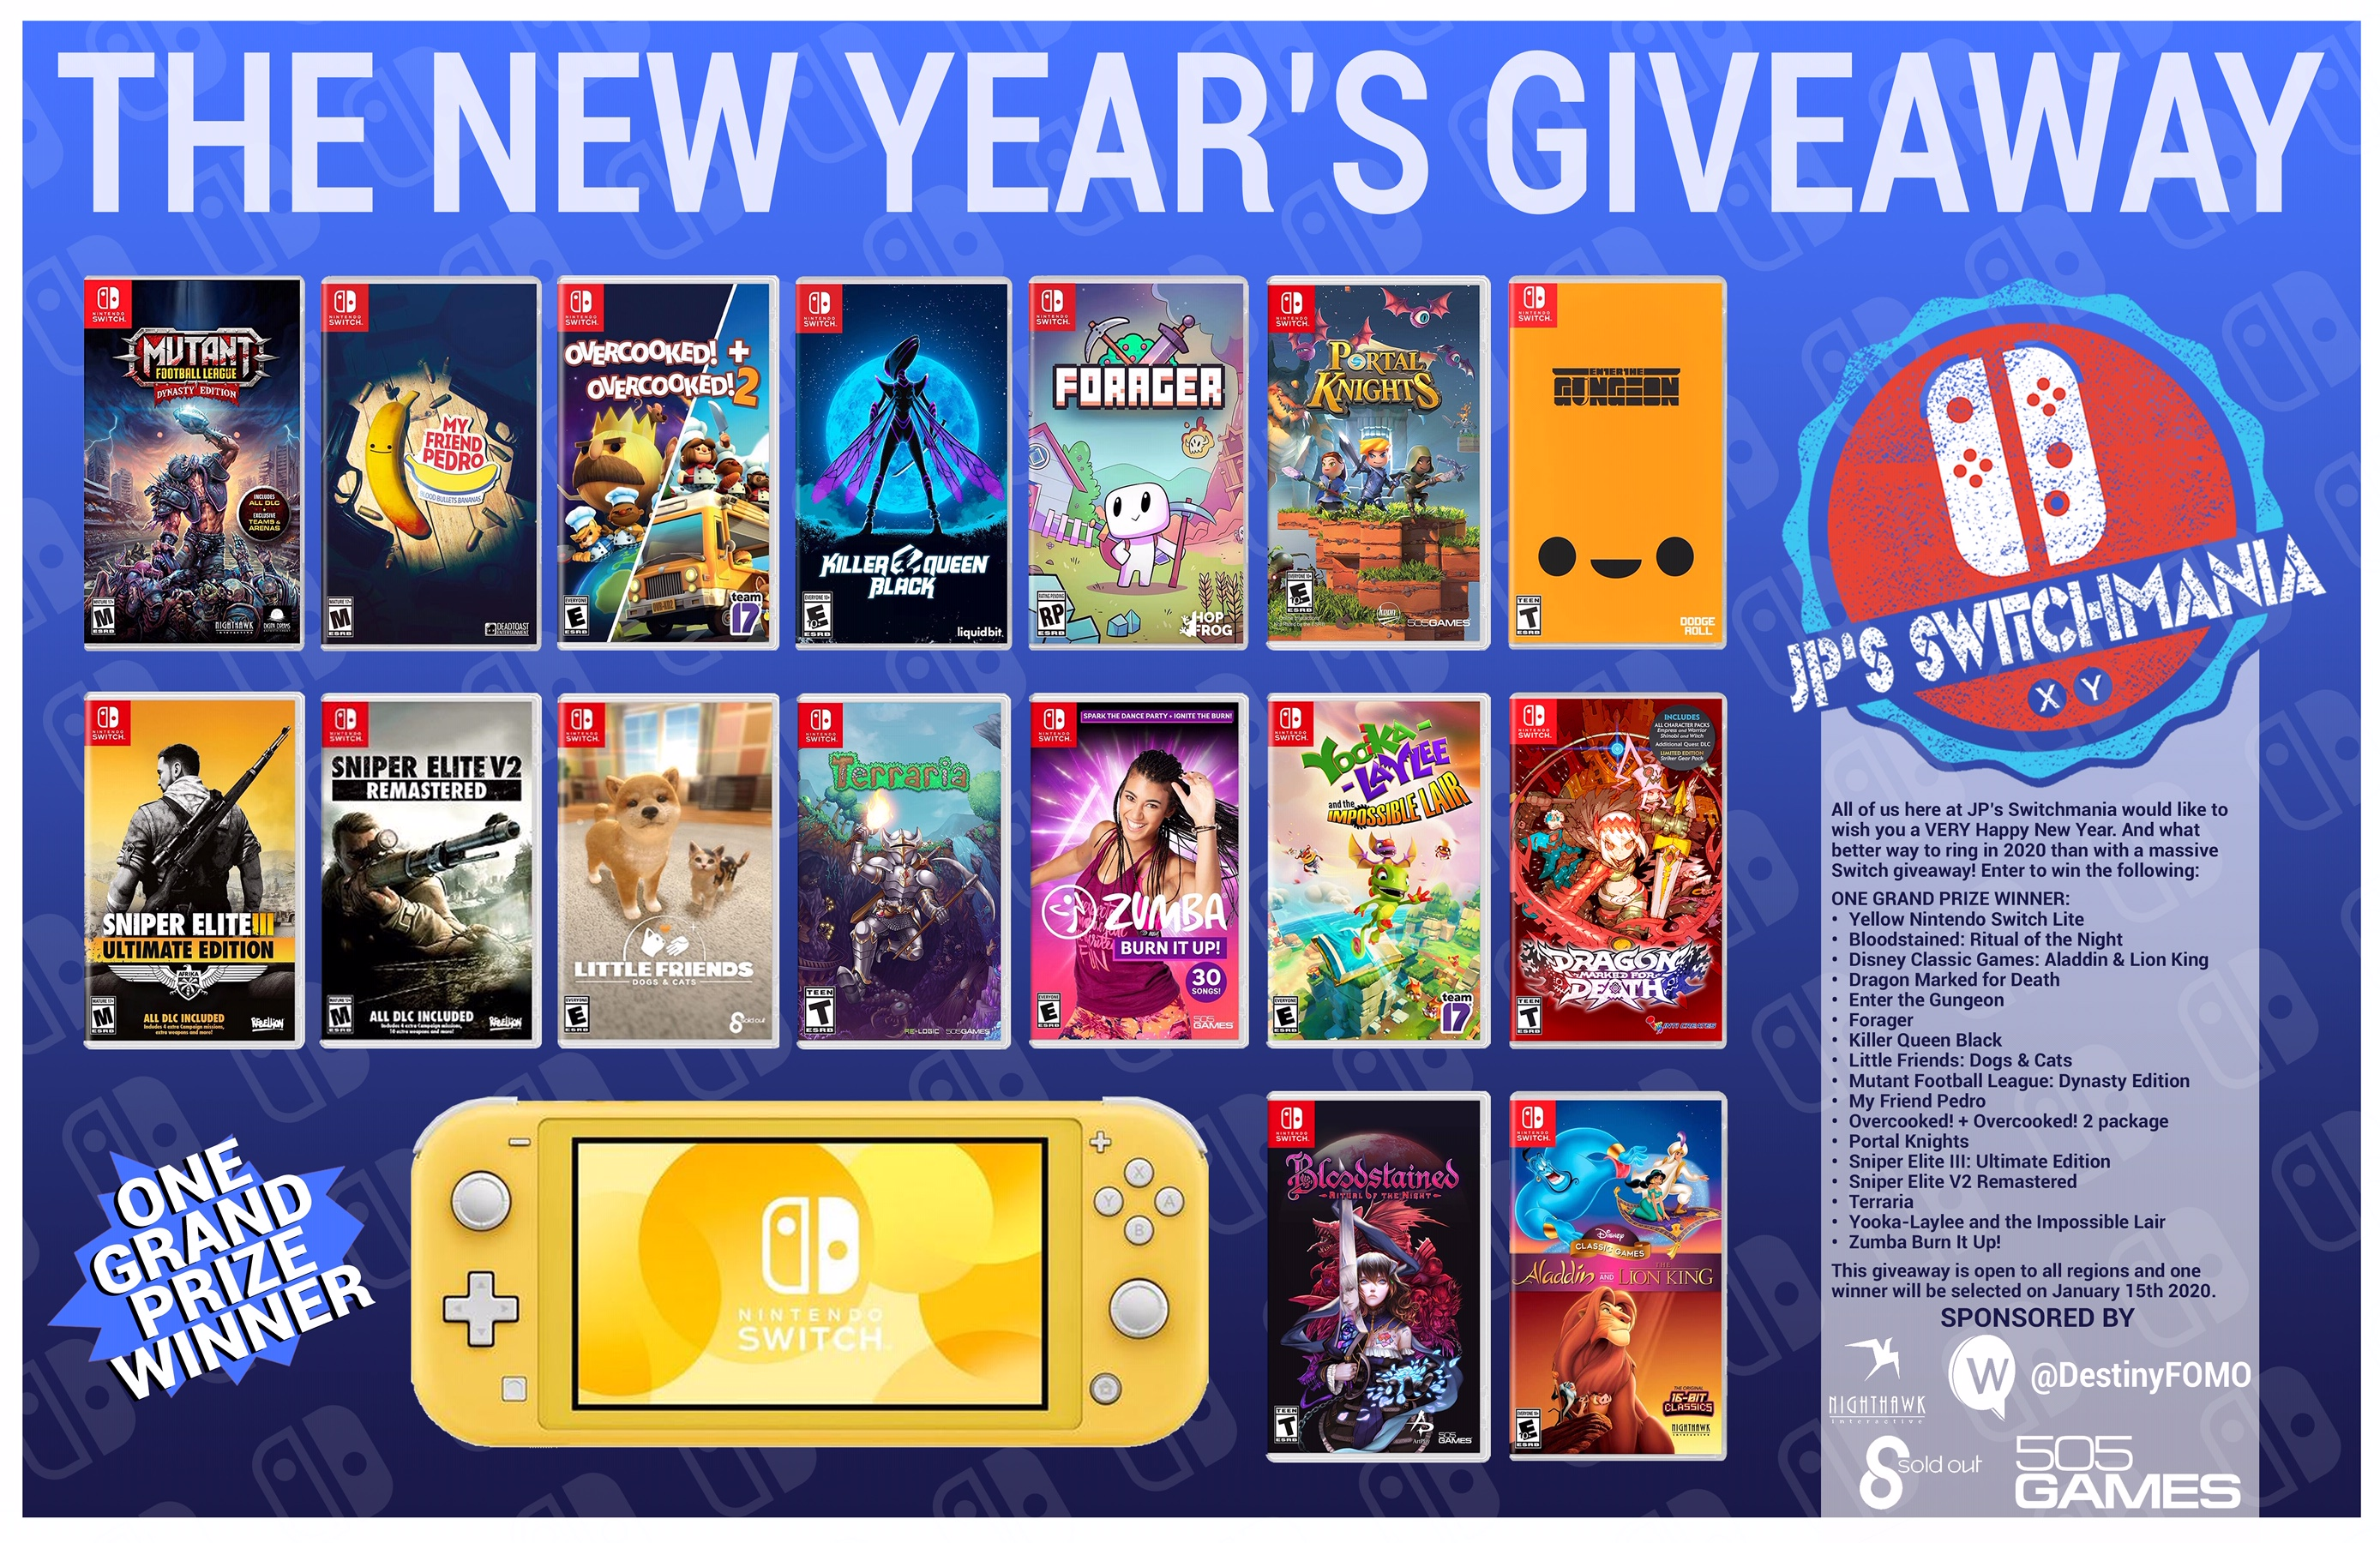 Nintendo Switch & Games Giveaway Image